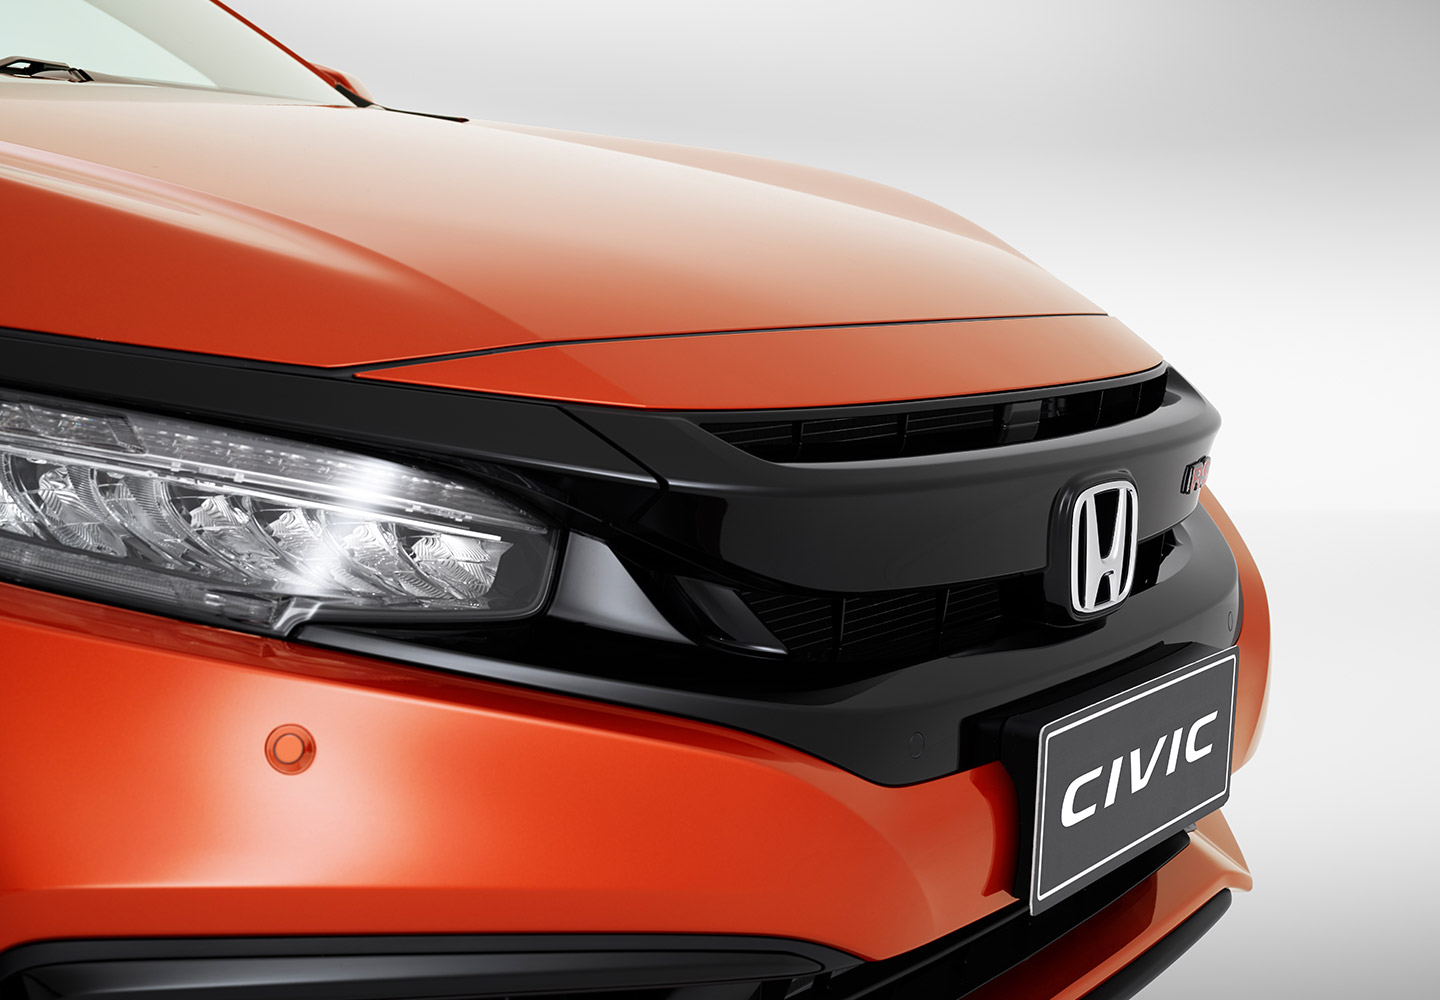 Civic Sedan Styling